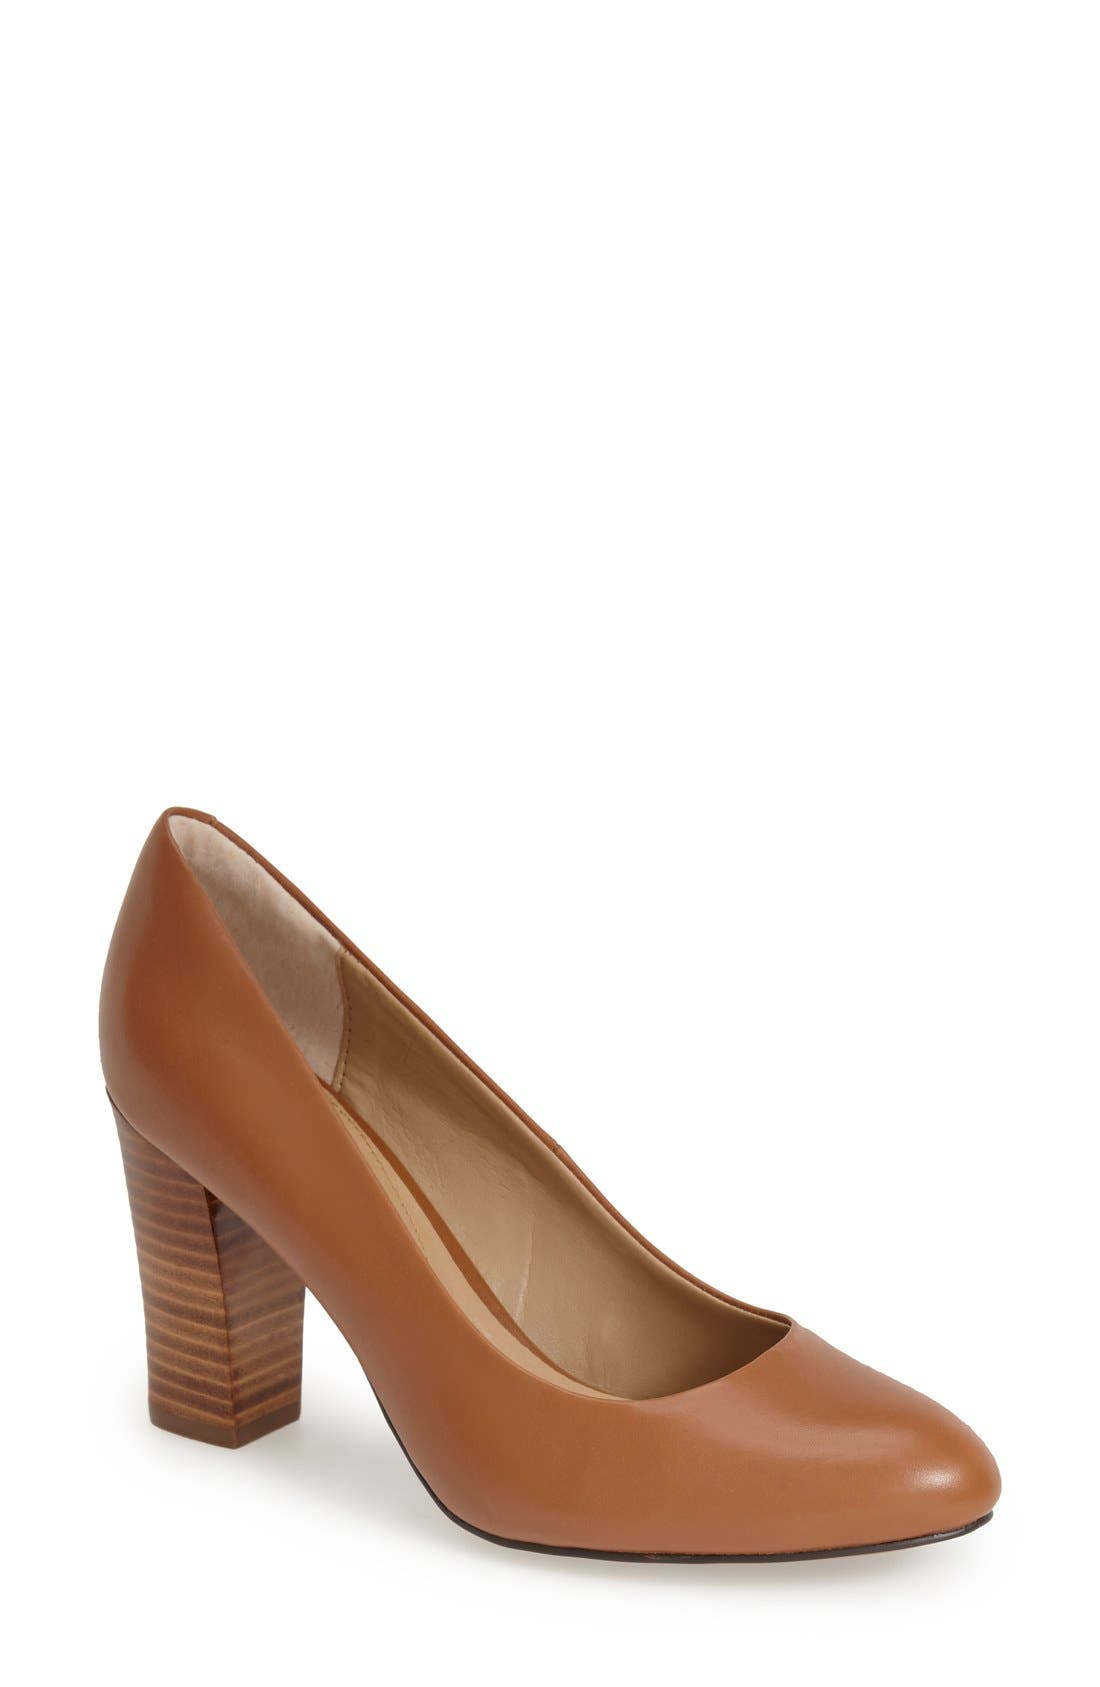 'Eleni II' Block Heel Pump,                             Main thumbnail 5, color,